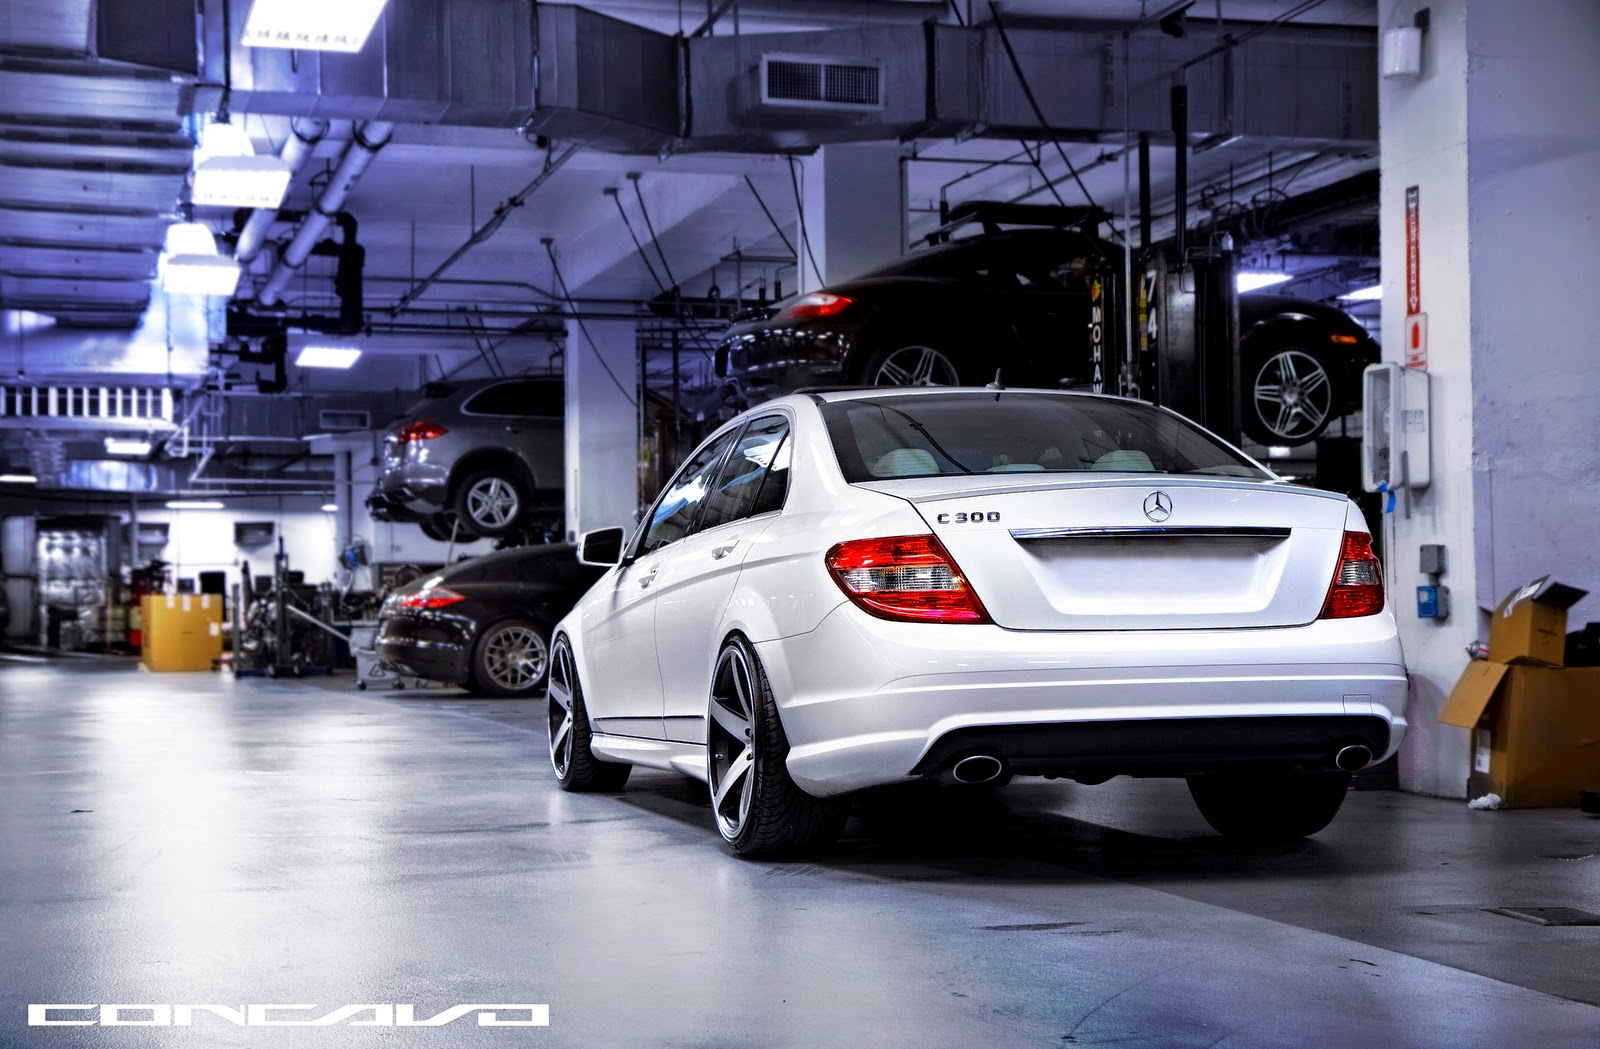 Benztuning mercedes benz w204 c300 on 20 cw 5 concavo wheels for Rims for mercedes benz c300